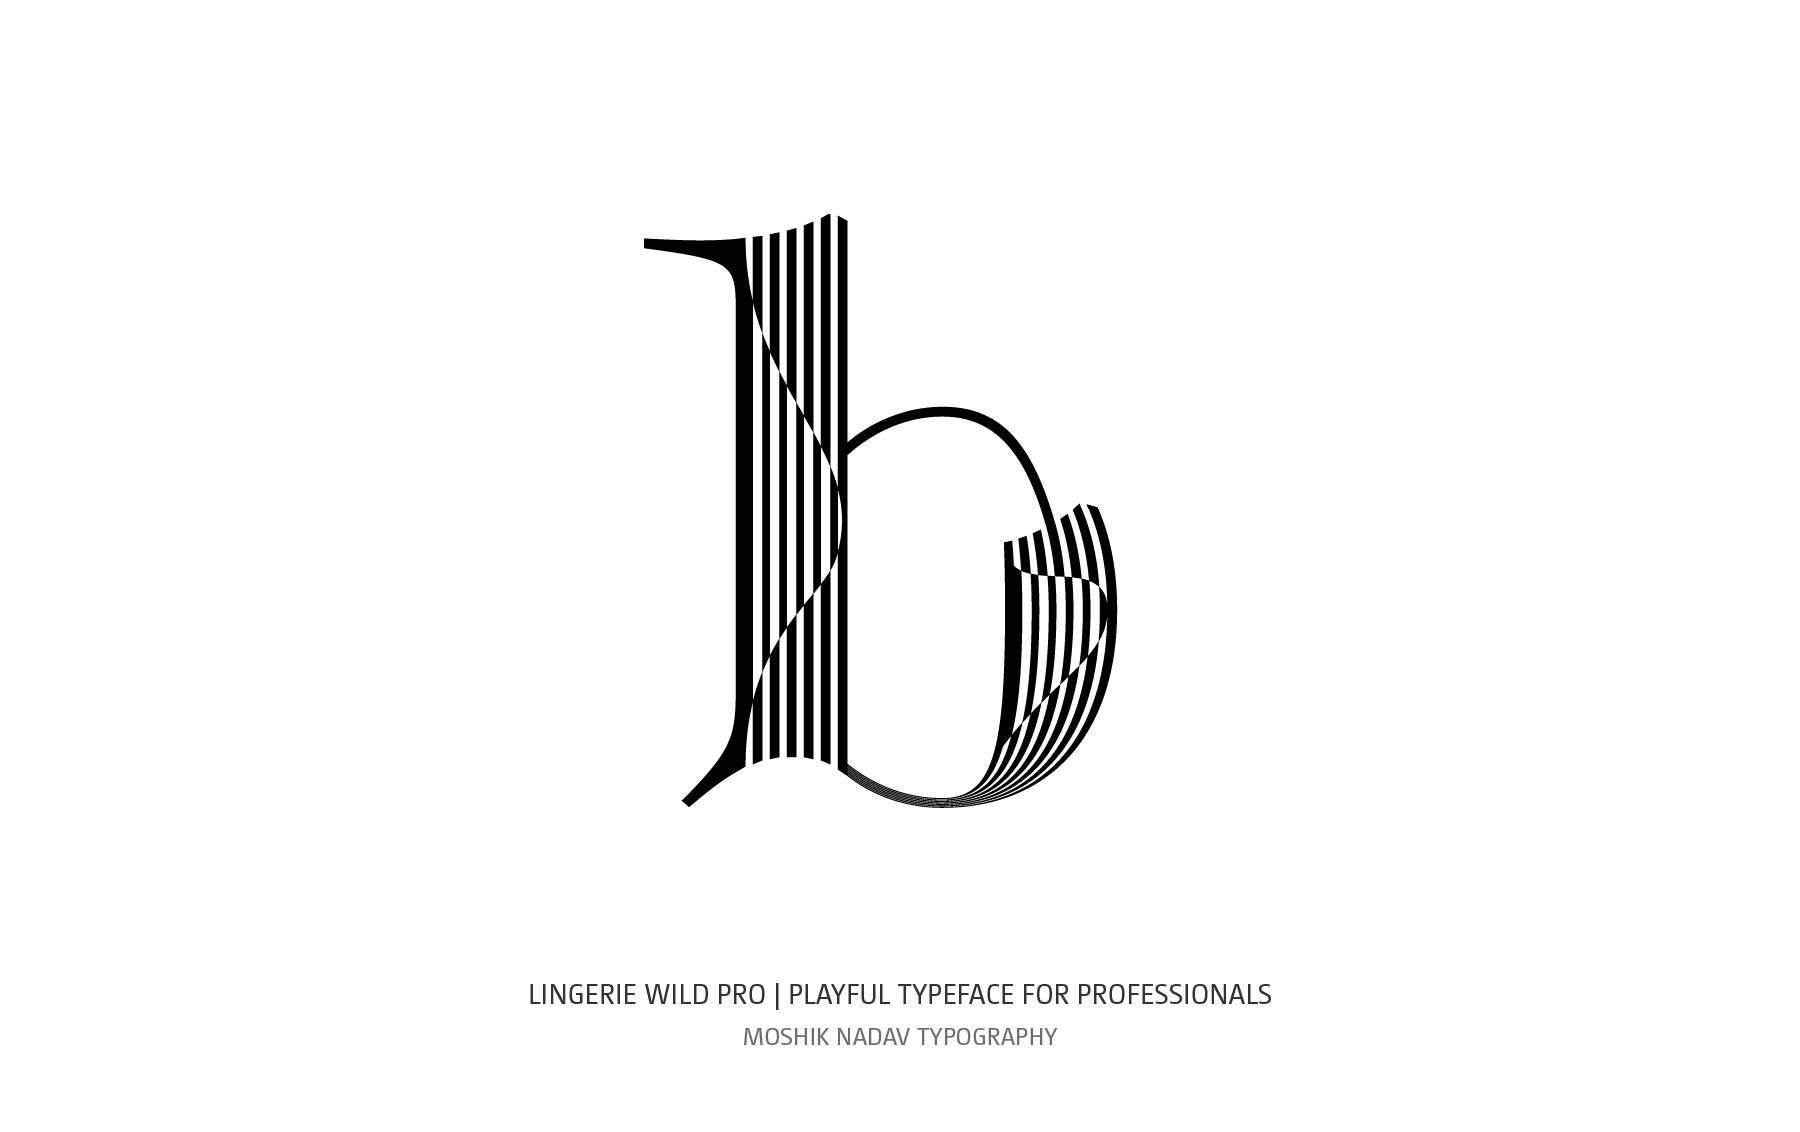 Lowercase b designed with Lingerie Wild Pro Typeface